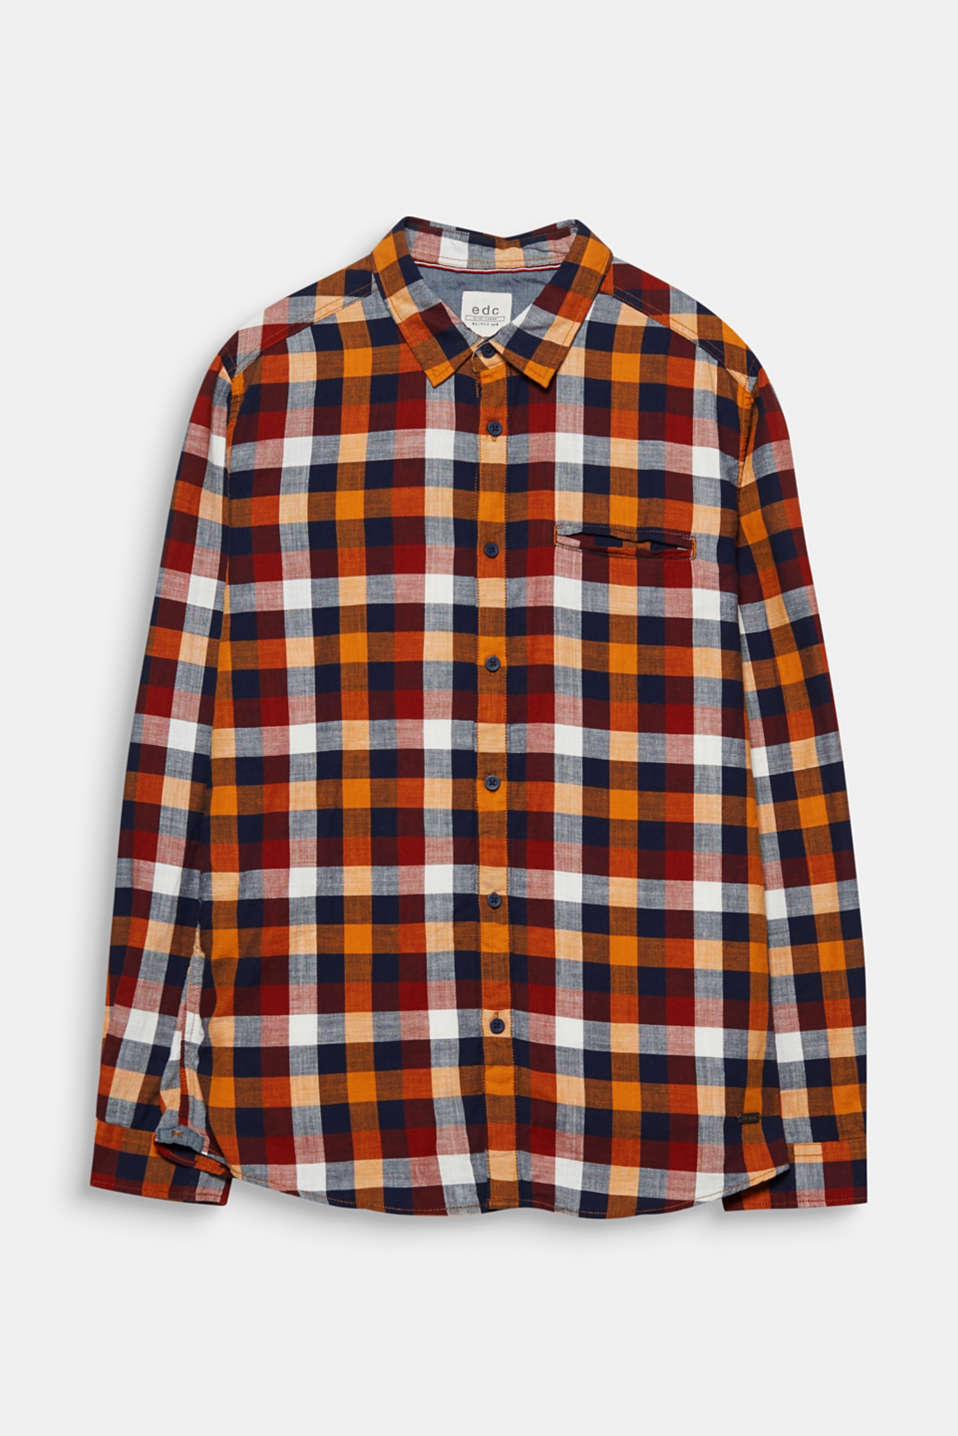 A classic, eye-catching accessory thanks to the colourful check pattern: 100% cotton shirt